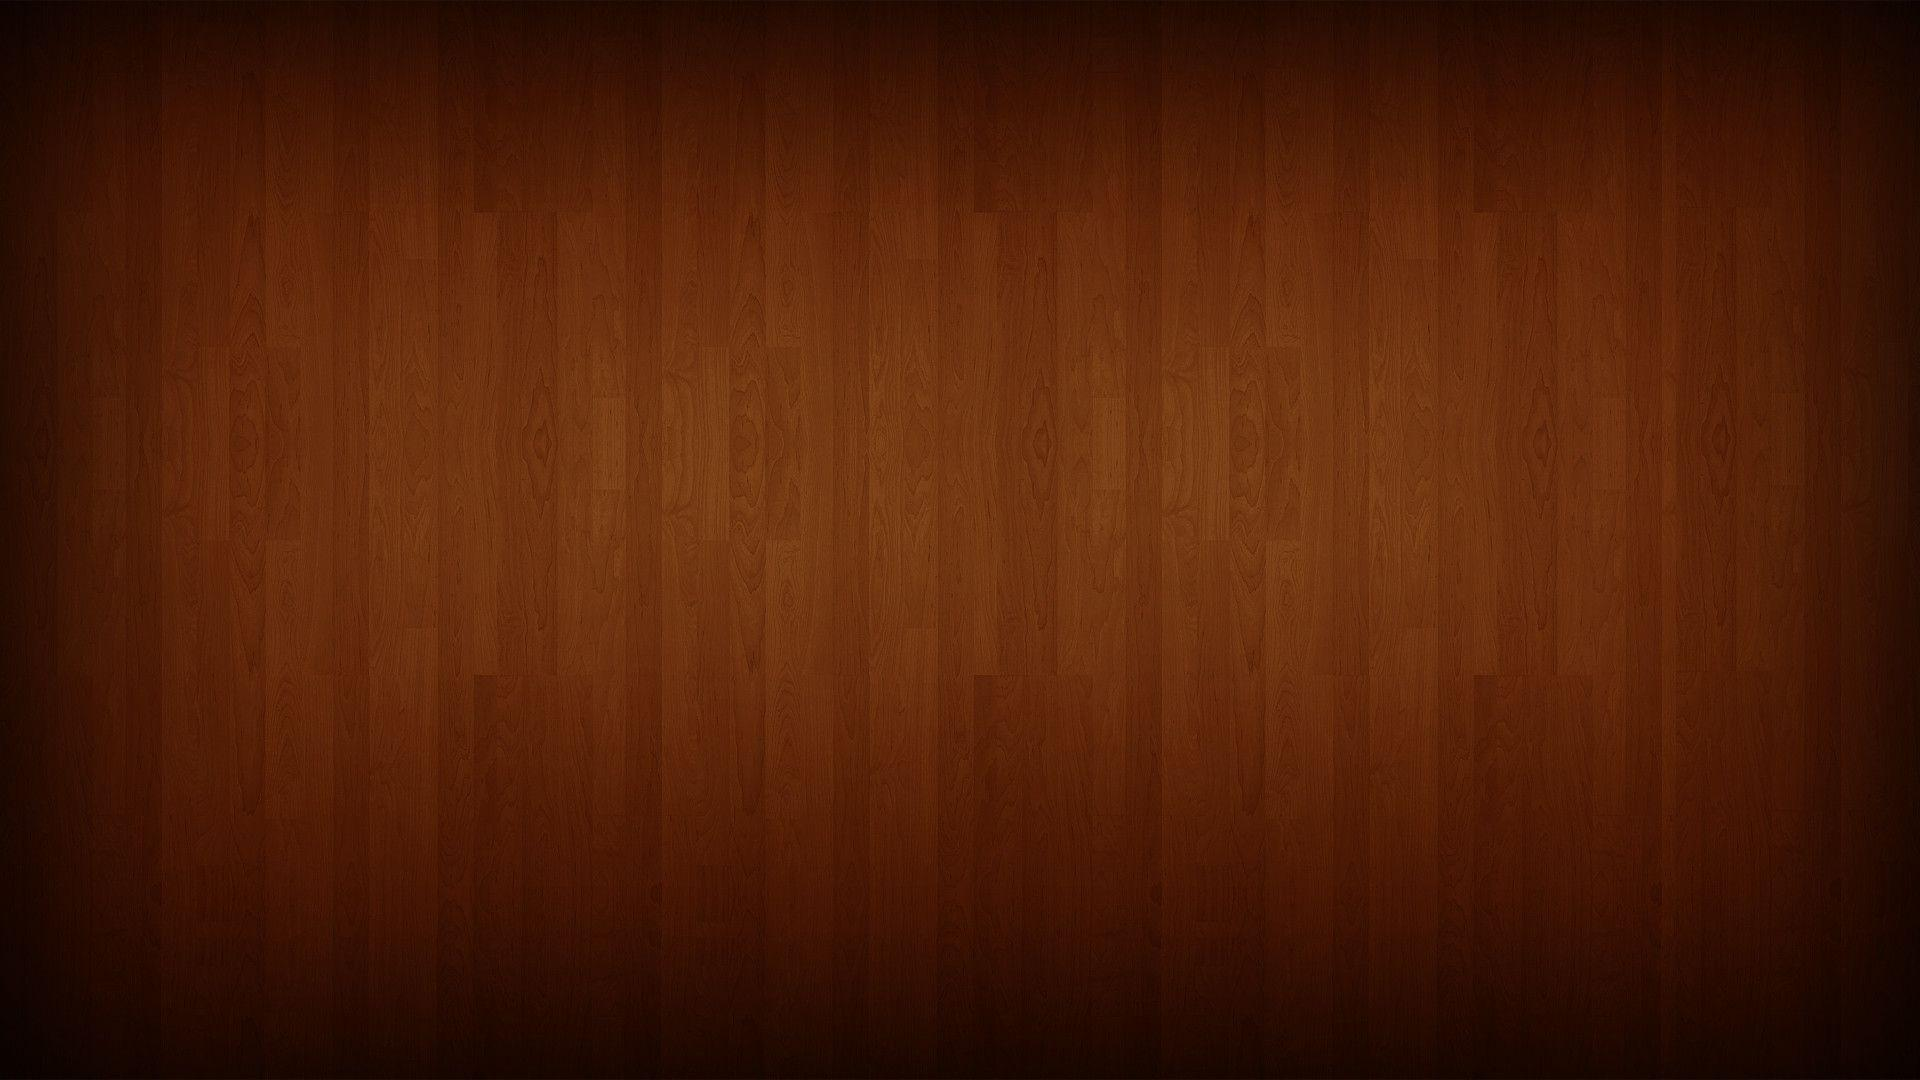 1920x1080 Wood Wallpapers 1080p